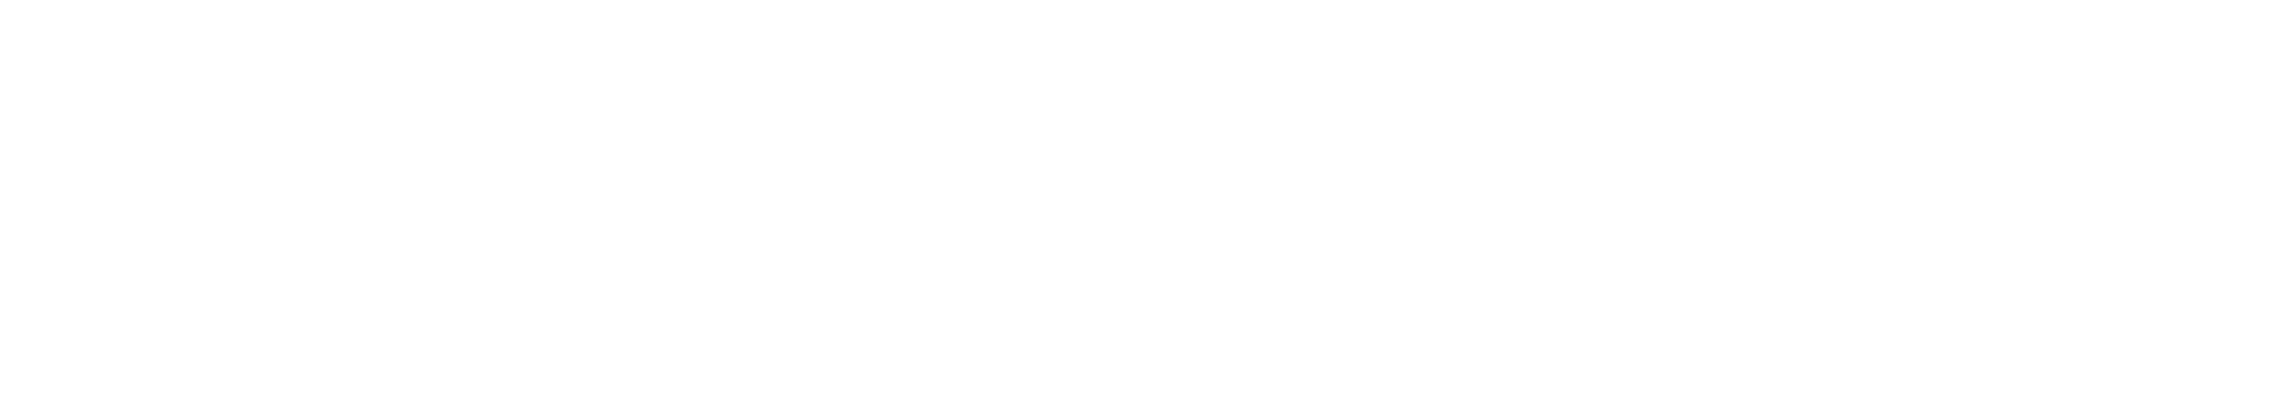 Professional Development League Two South logo